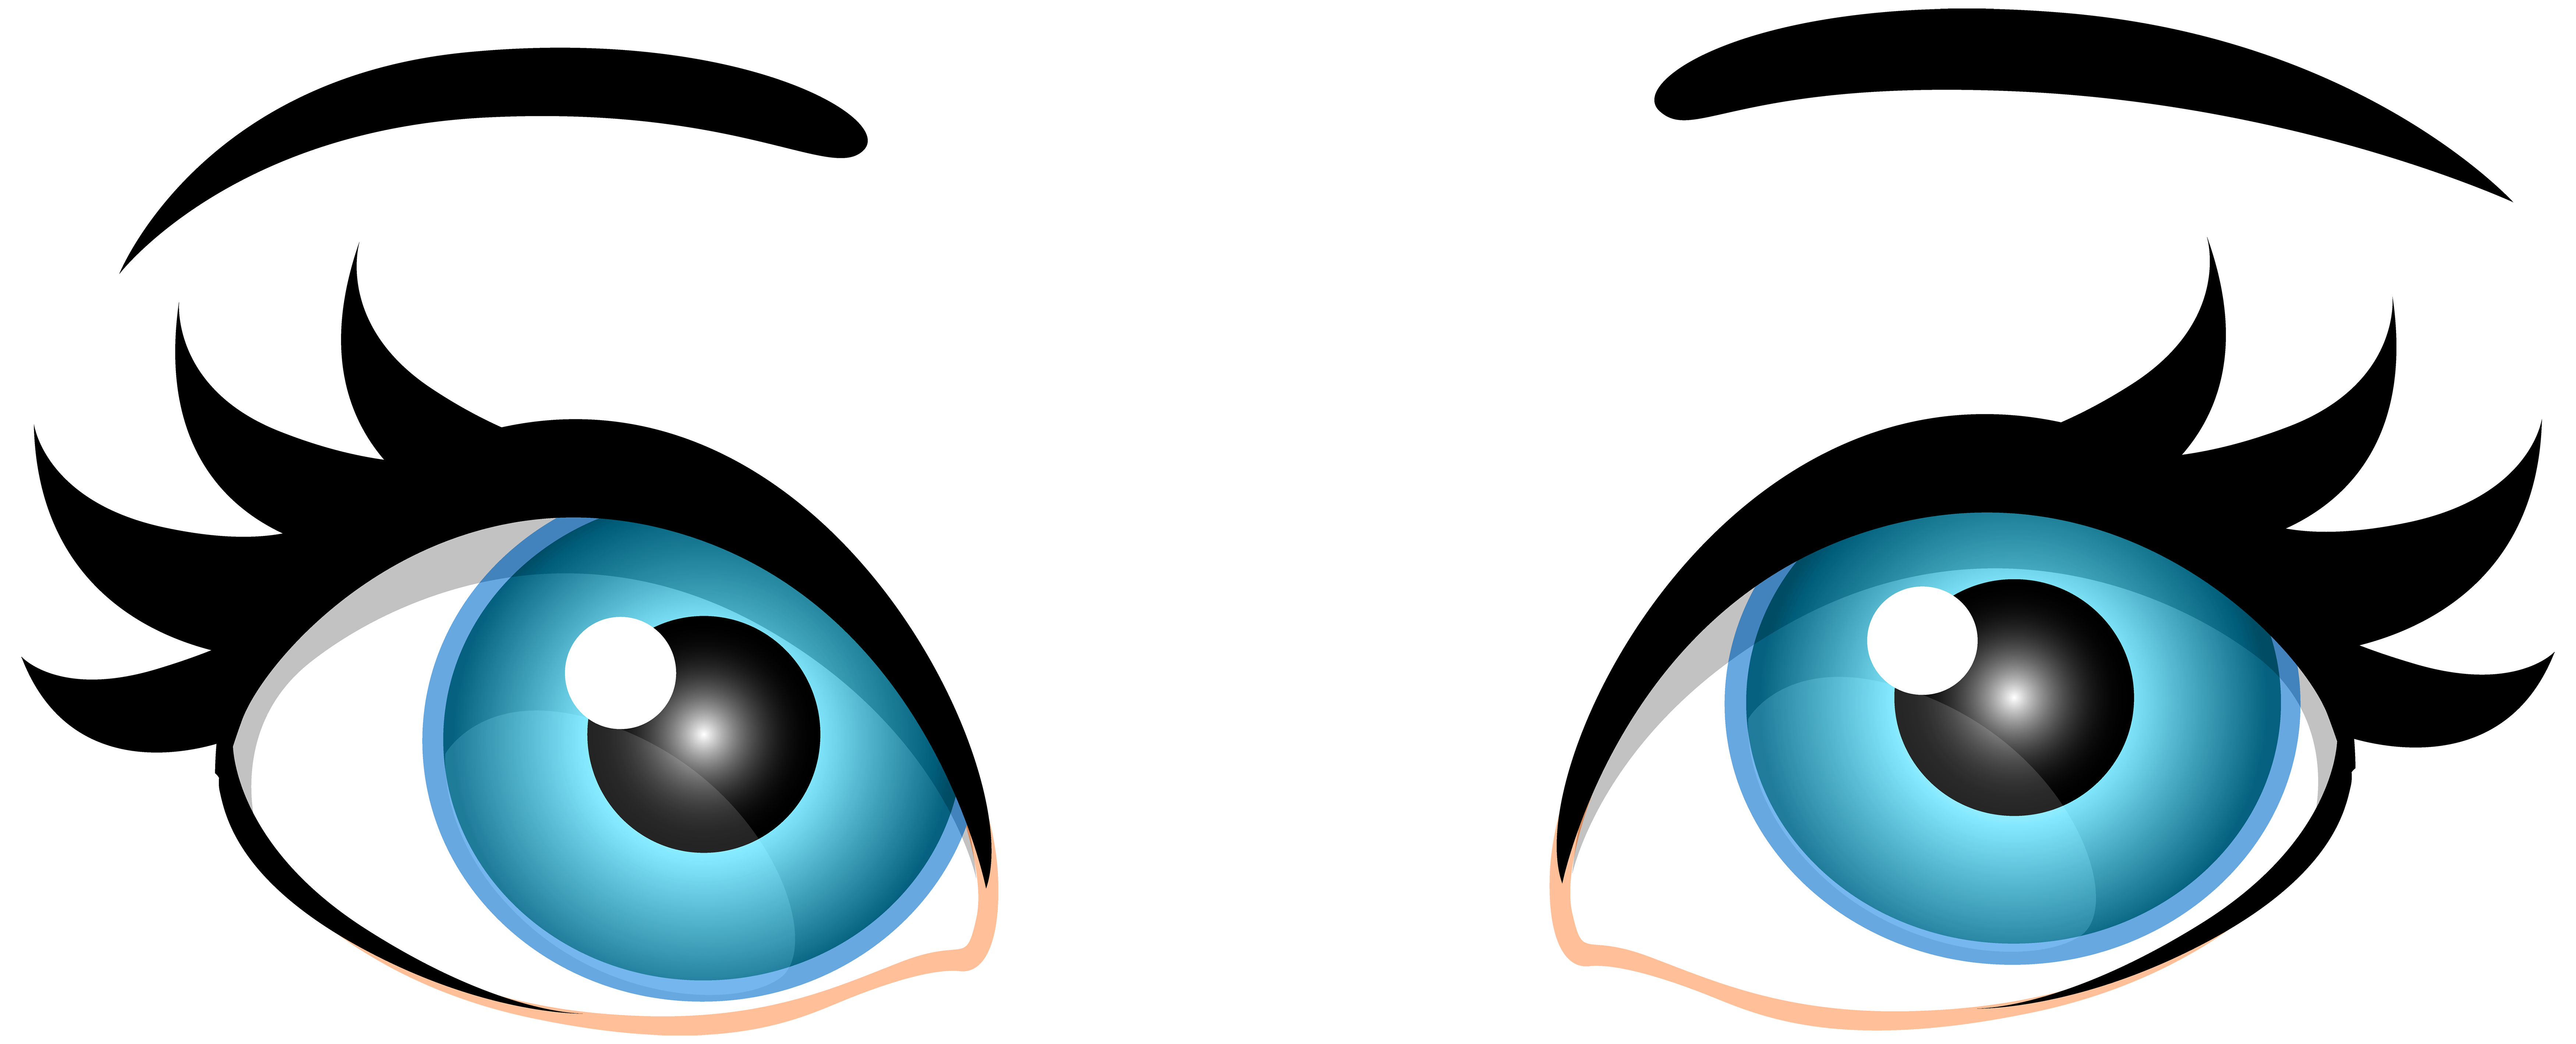 Eyes Png & Free Eyes.png Transparent Images #42 - PNGio